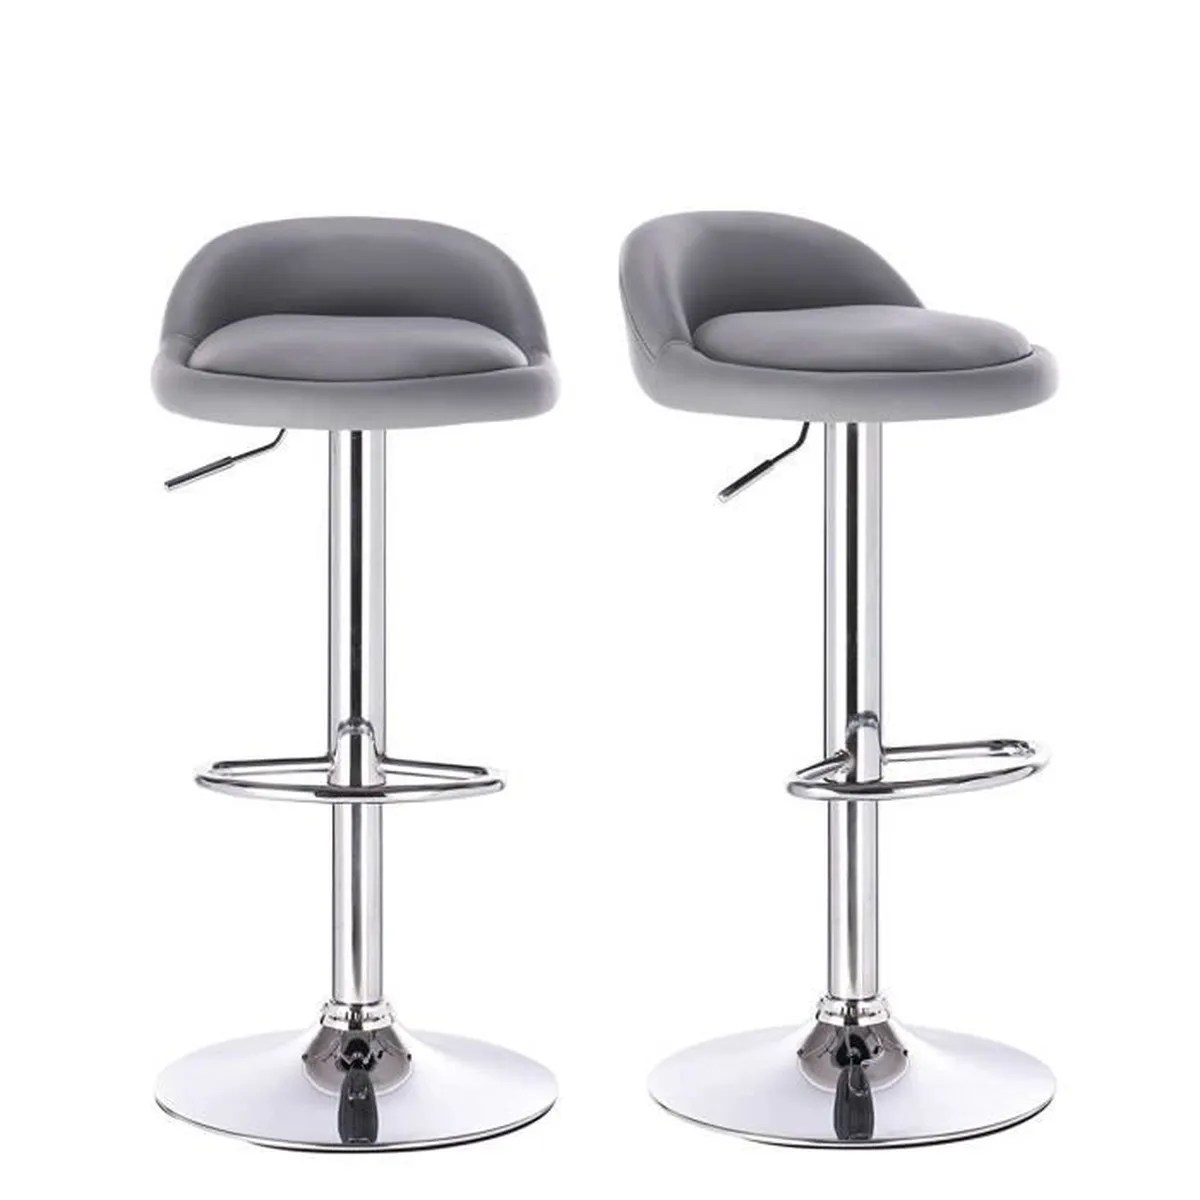 Lot 6 Tabourets Bar Kayelles Tabourets De Bar Cuisine Sati Lot De 2 Chaises